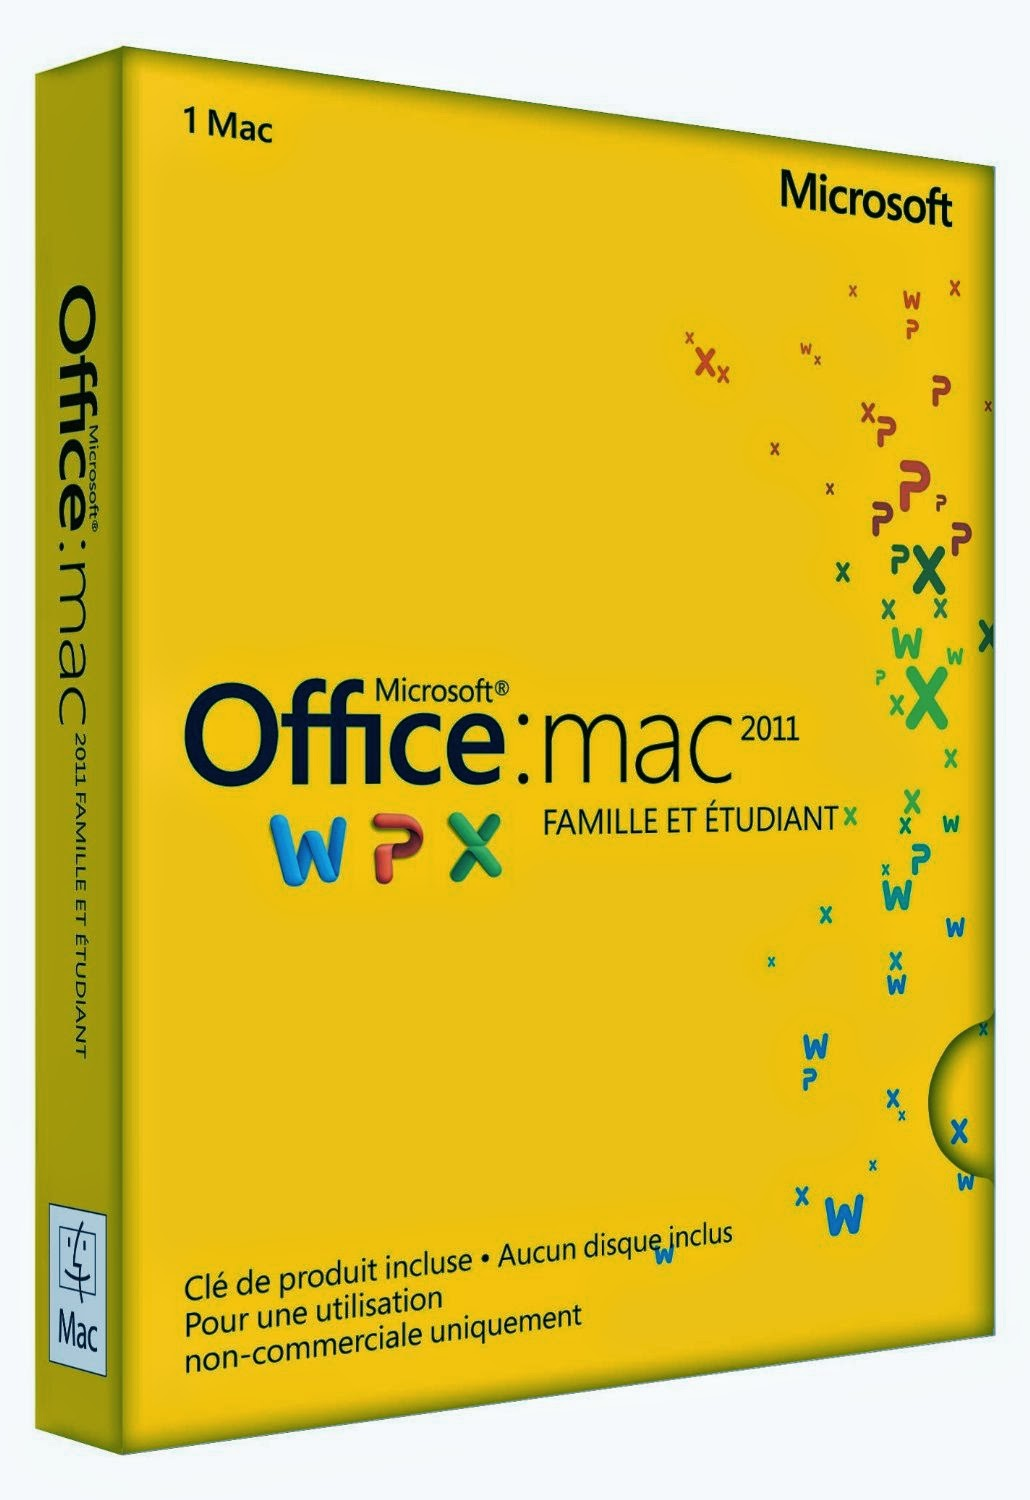 Office mac famille et etudiant 2011 inclus crack keygen inclus pc fran ais telechargement - Pack office mac gratuit francais ...